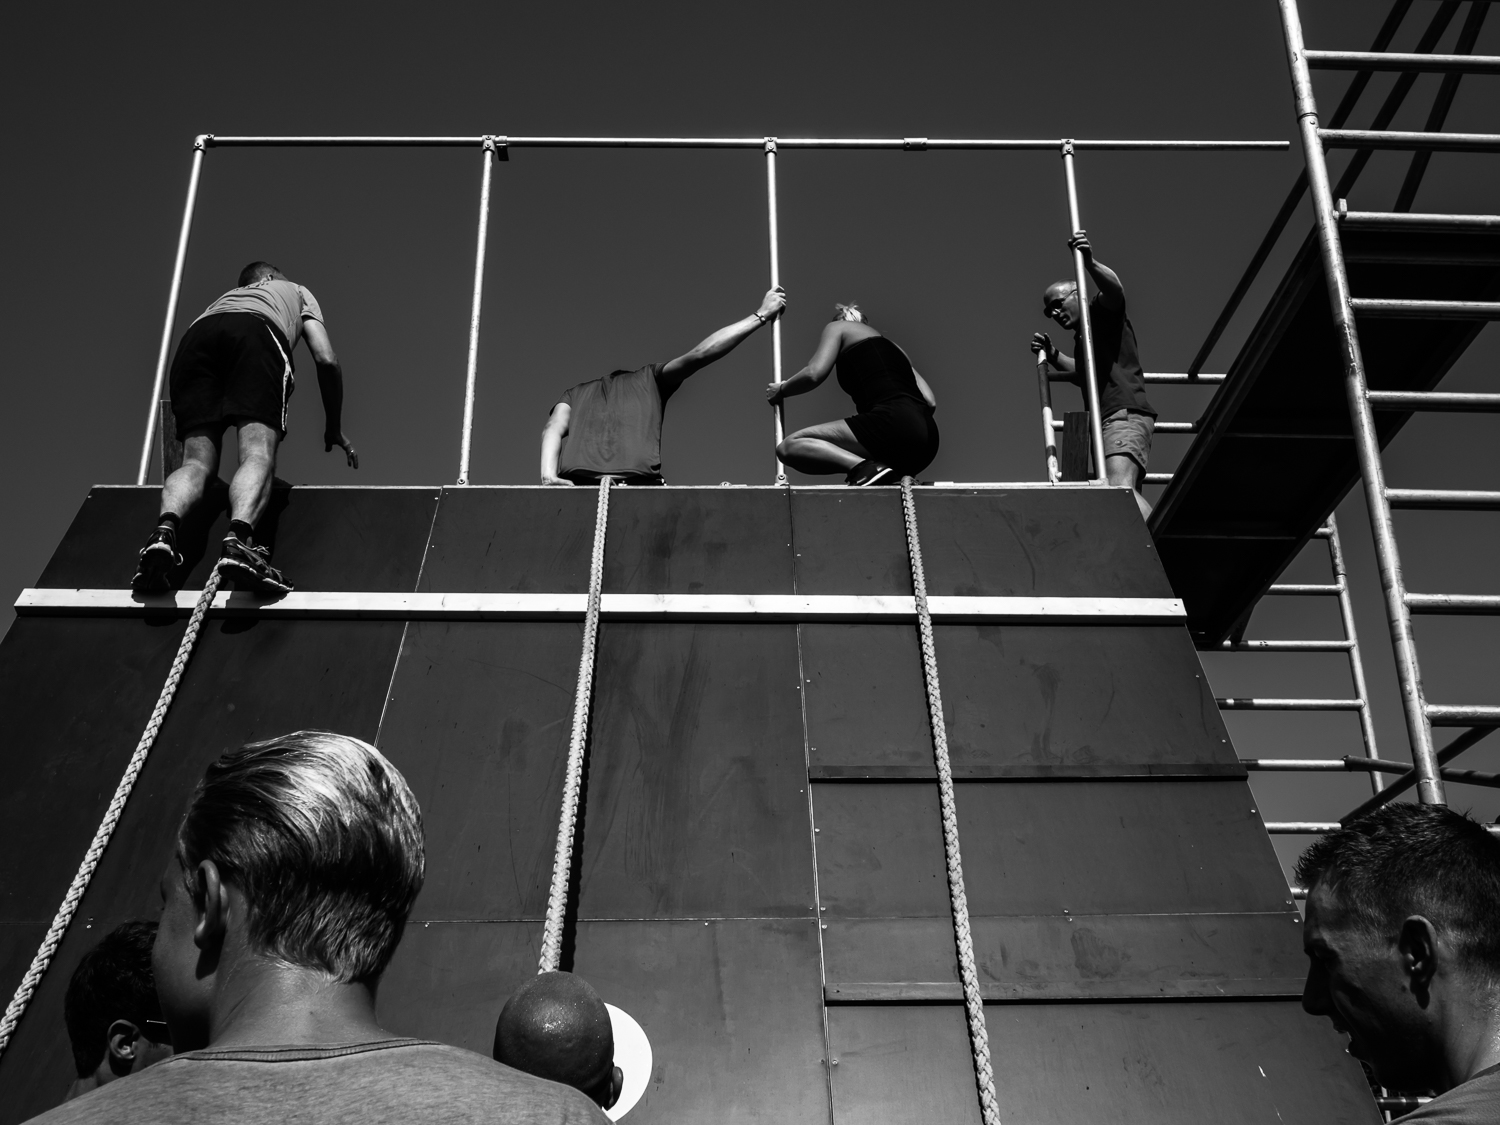 """zwolle AUGUST 2016  Shot taken during the Obstaclerun in Zwolle at the """"Milligerplas"""" just near my house.  The participants are running on a 9 km track and find 8 obstacles they have to take. Here they climb on a slide where they jump into the harbor of the Milligerplas.  Shot with Olympus OMD5 Mark 2 and Olympus 17 mm f/1.8"""